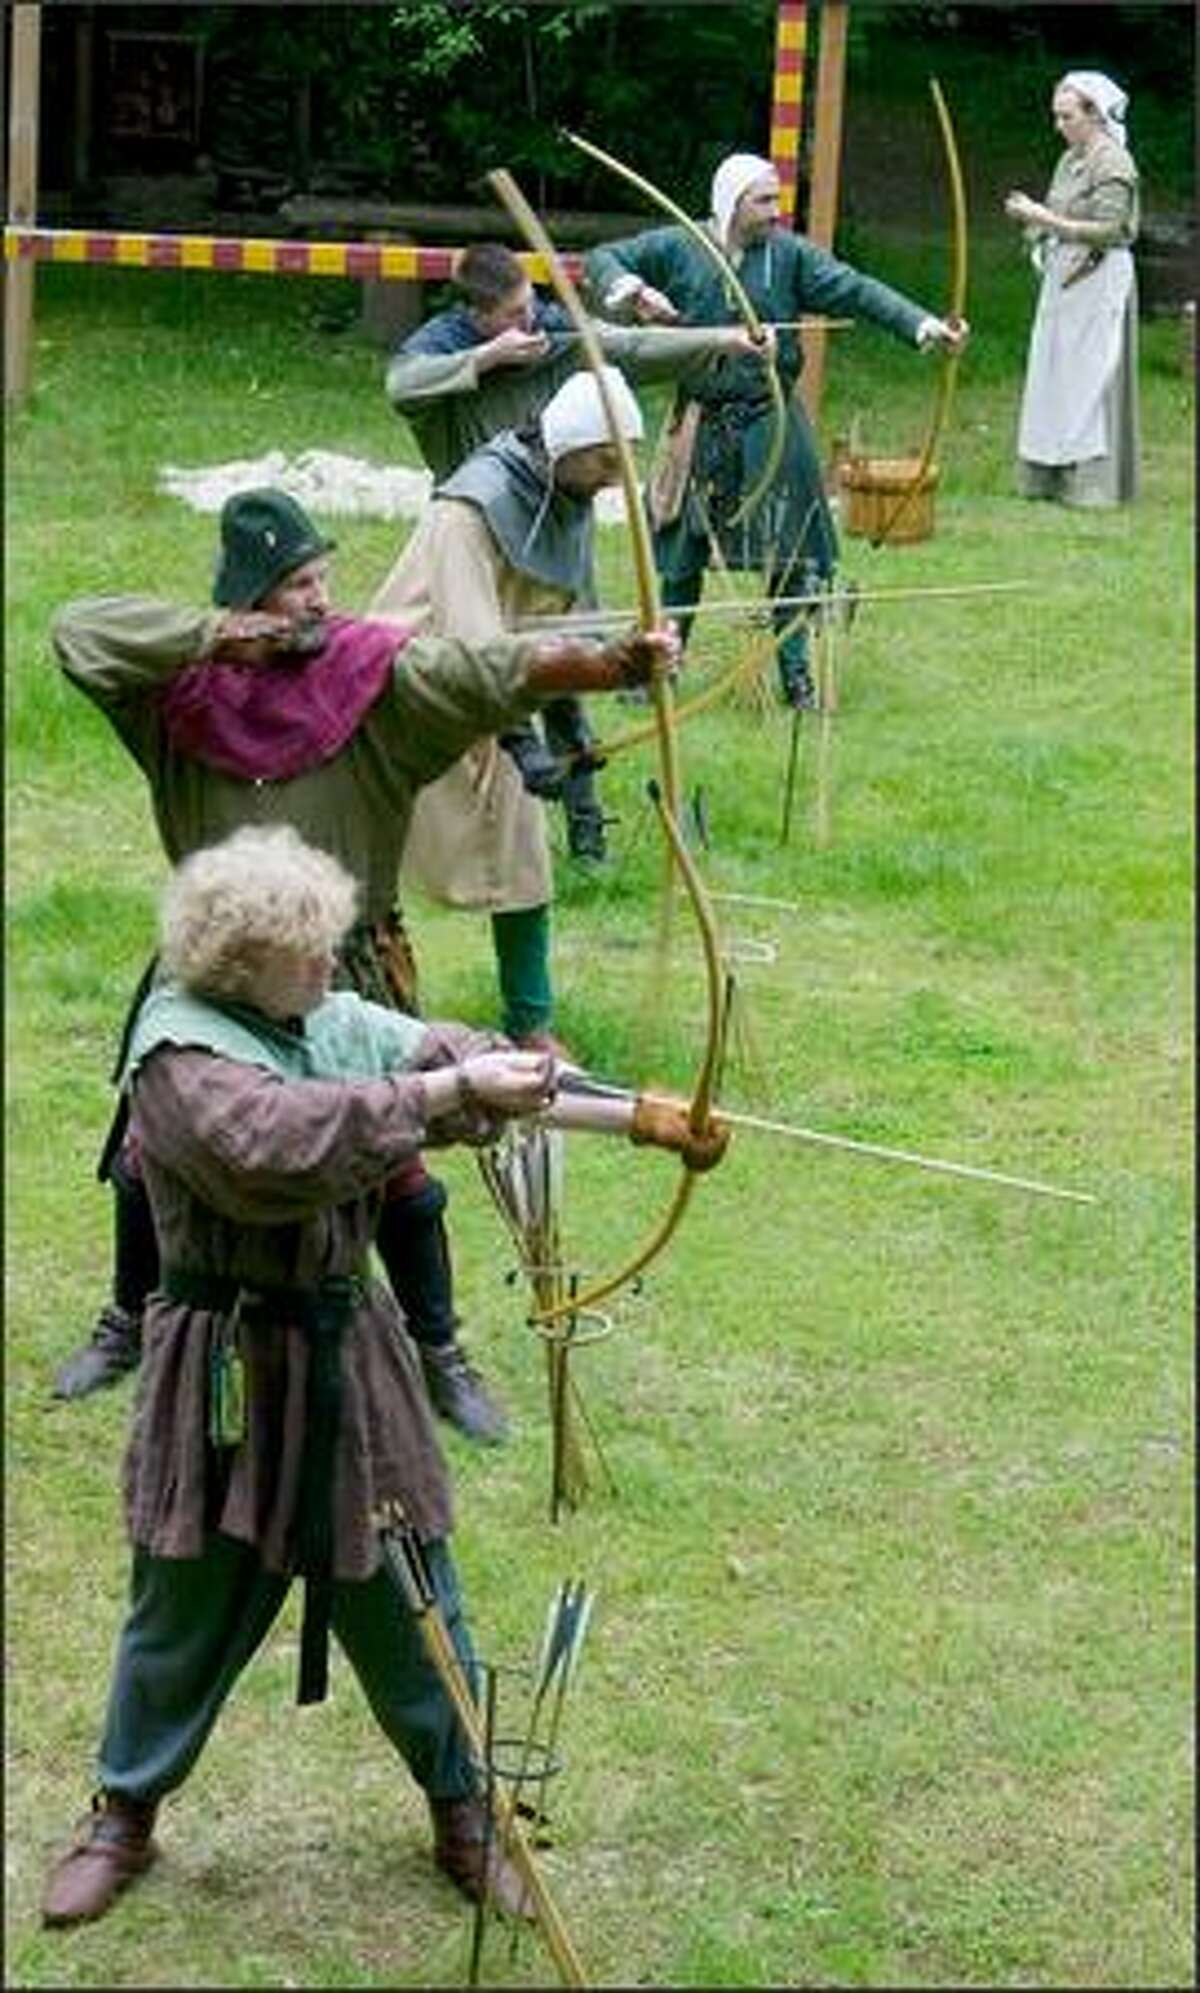 From bottom to top: James, Richard, Nicholas, Christopher and David take aim at targets on the archery range at Camlann. The village, set on 36 acres, is a living history project portraying rural England in 1376.